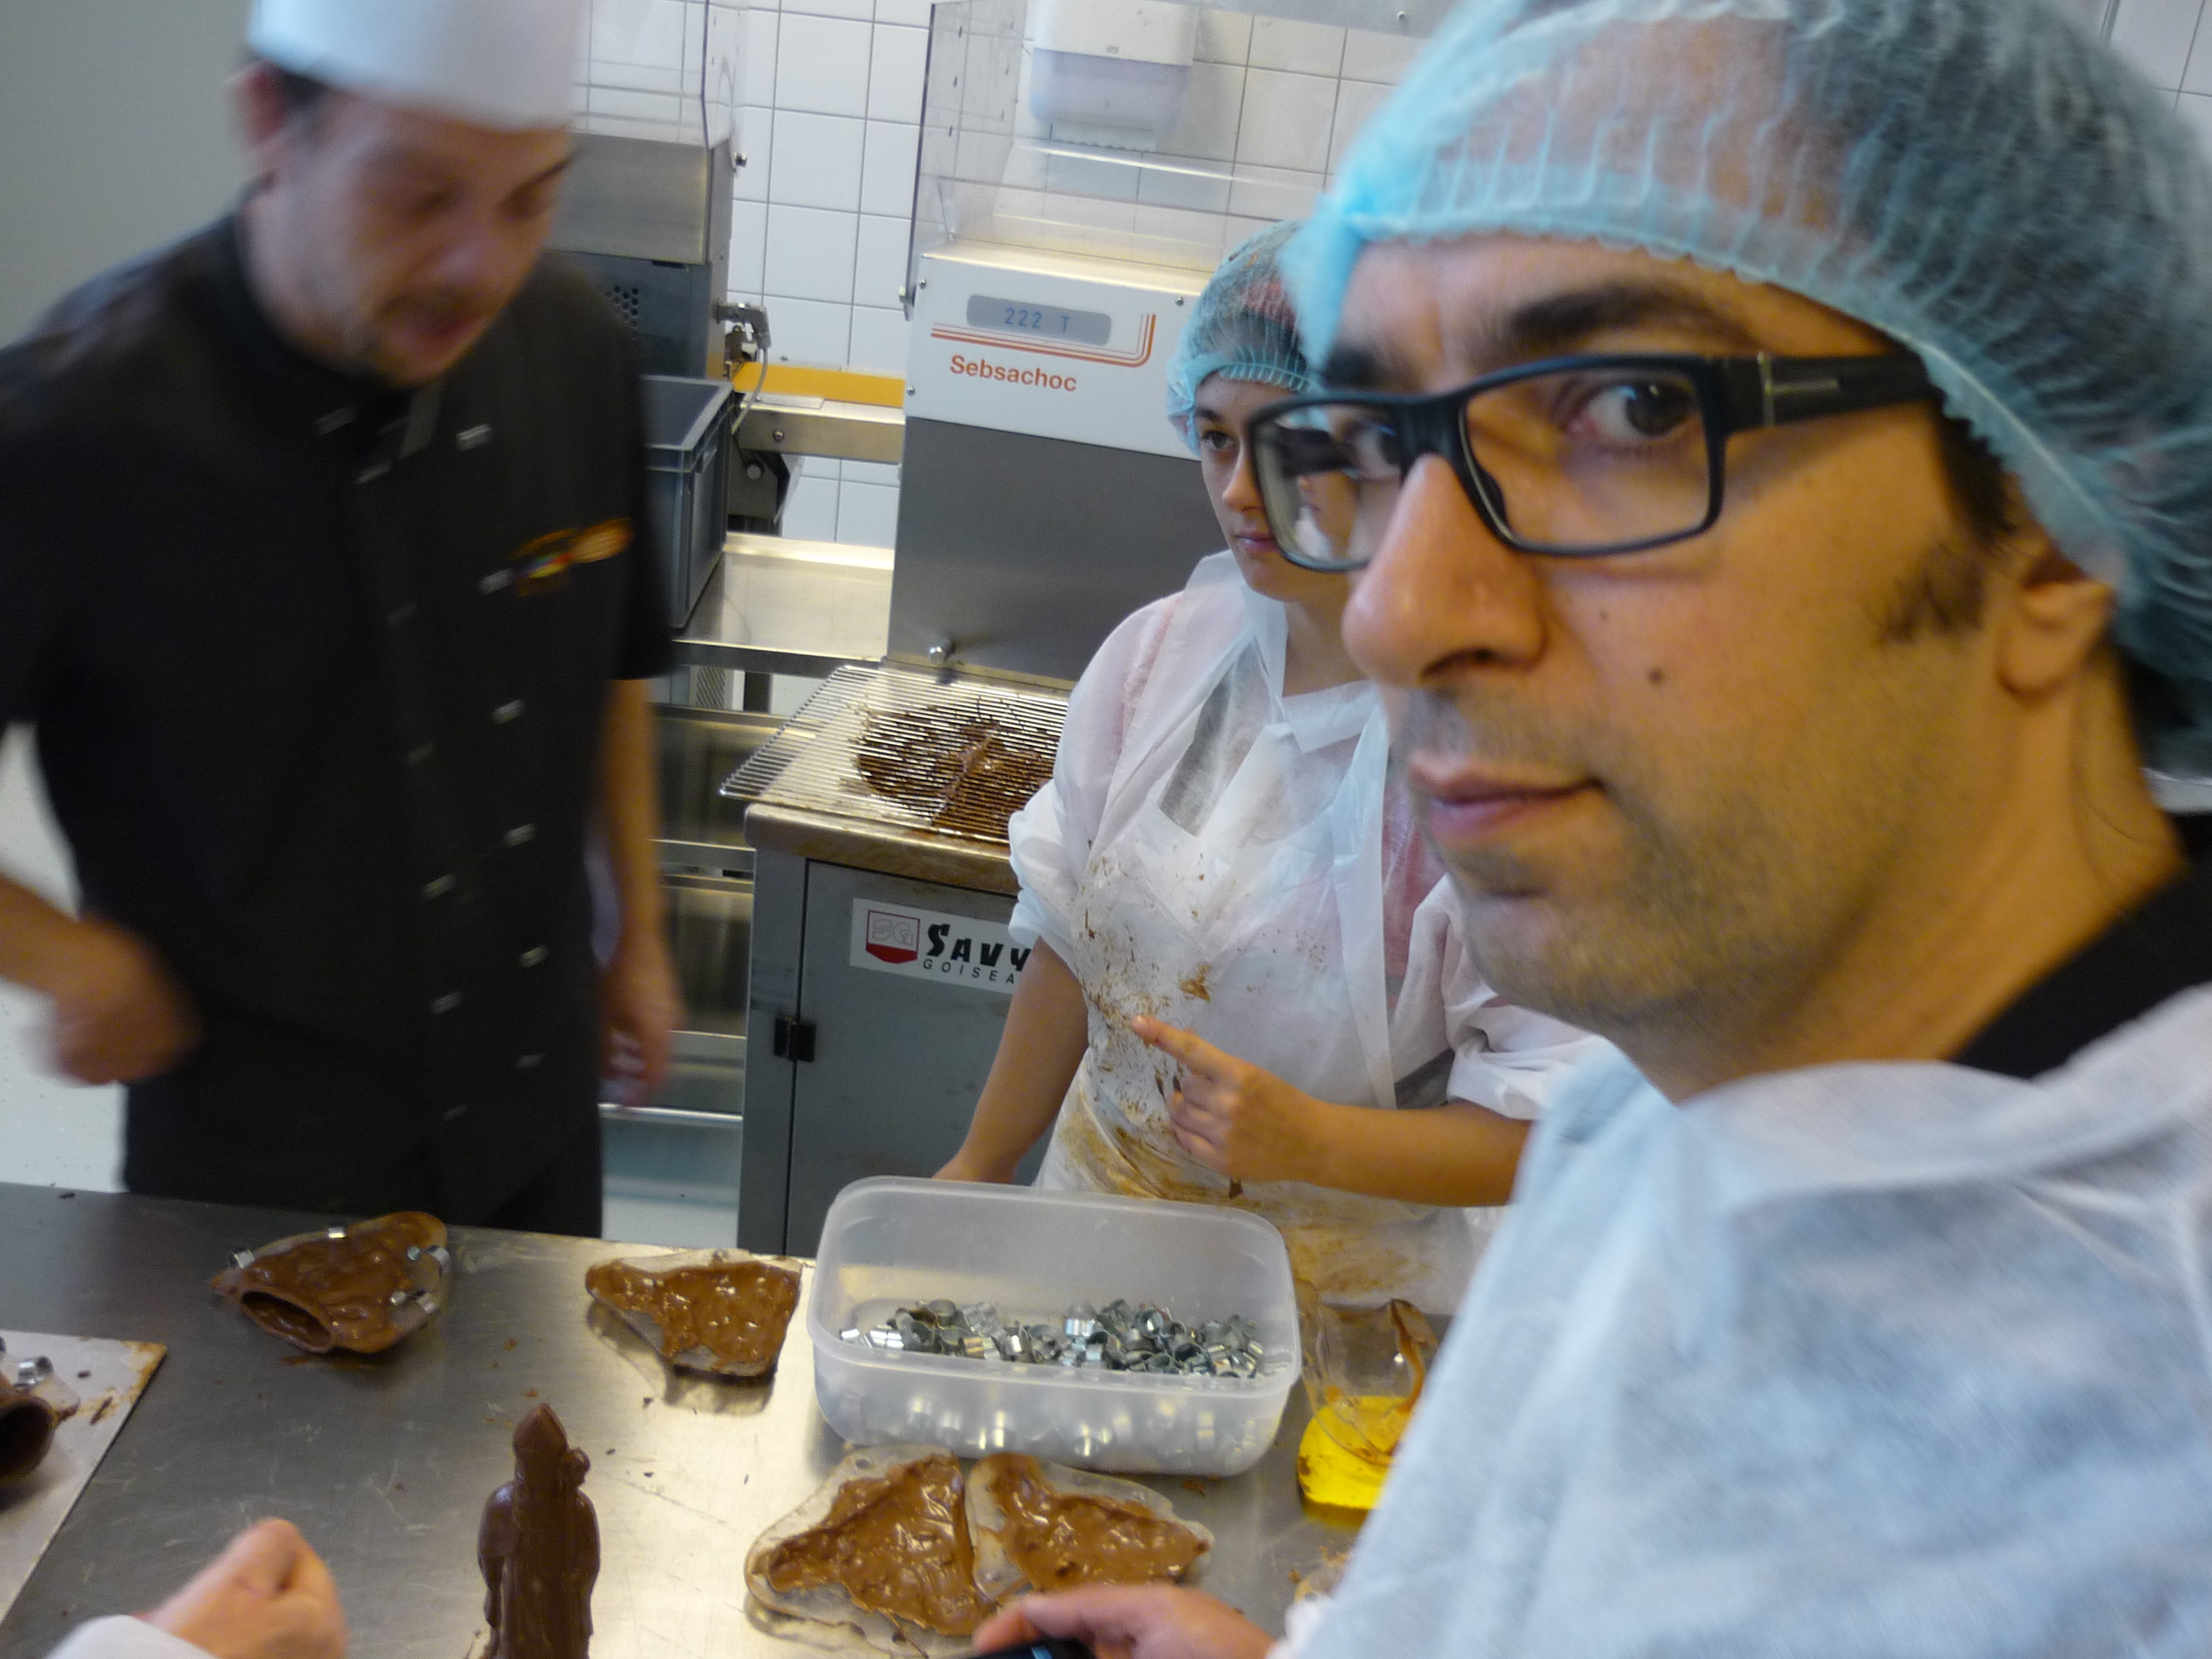 Joao-Paulo having a sweet time with Maître Chocolatier Marc Schneider